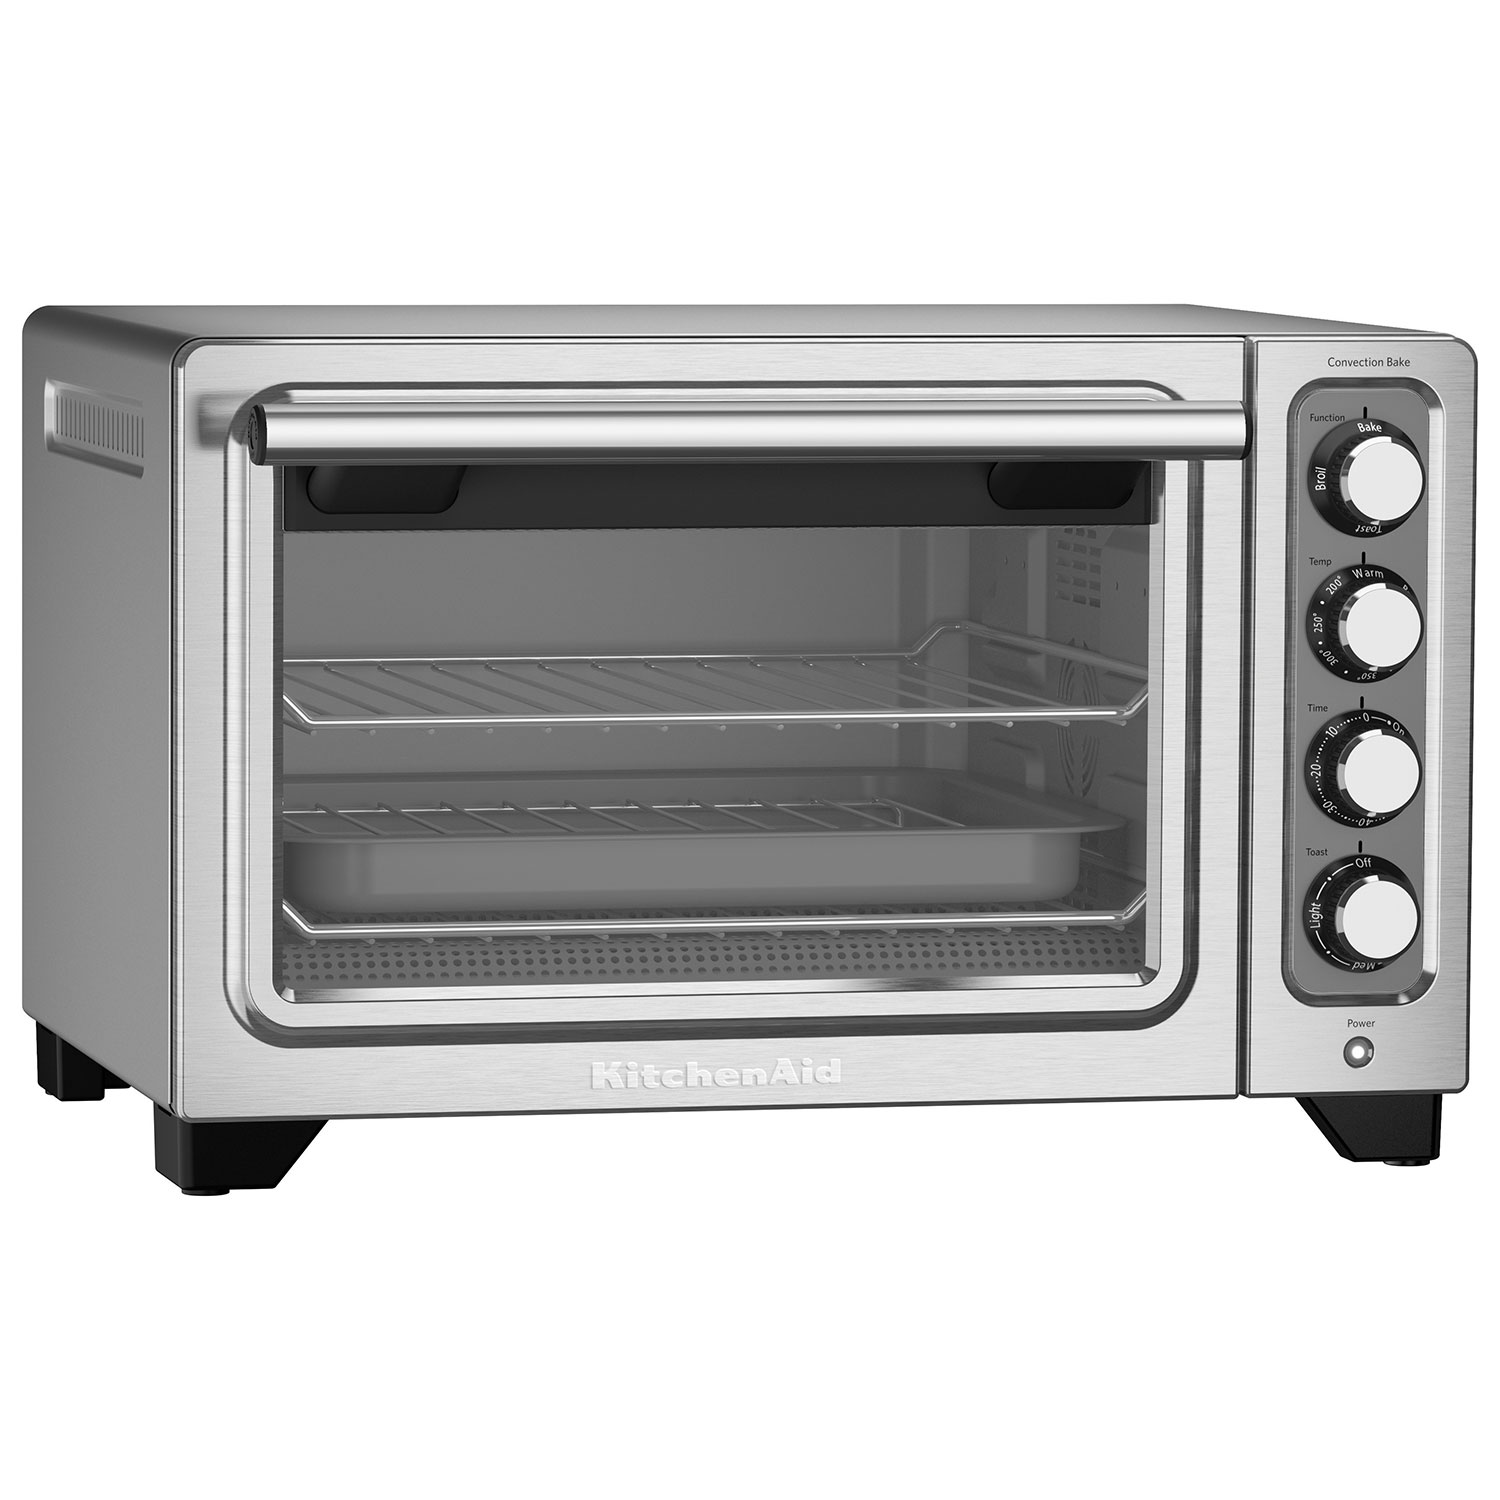 com ip sale beach model toaster walmart hamilton for oven